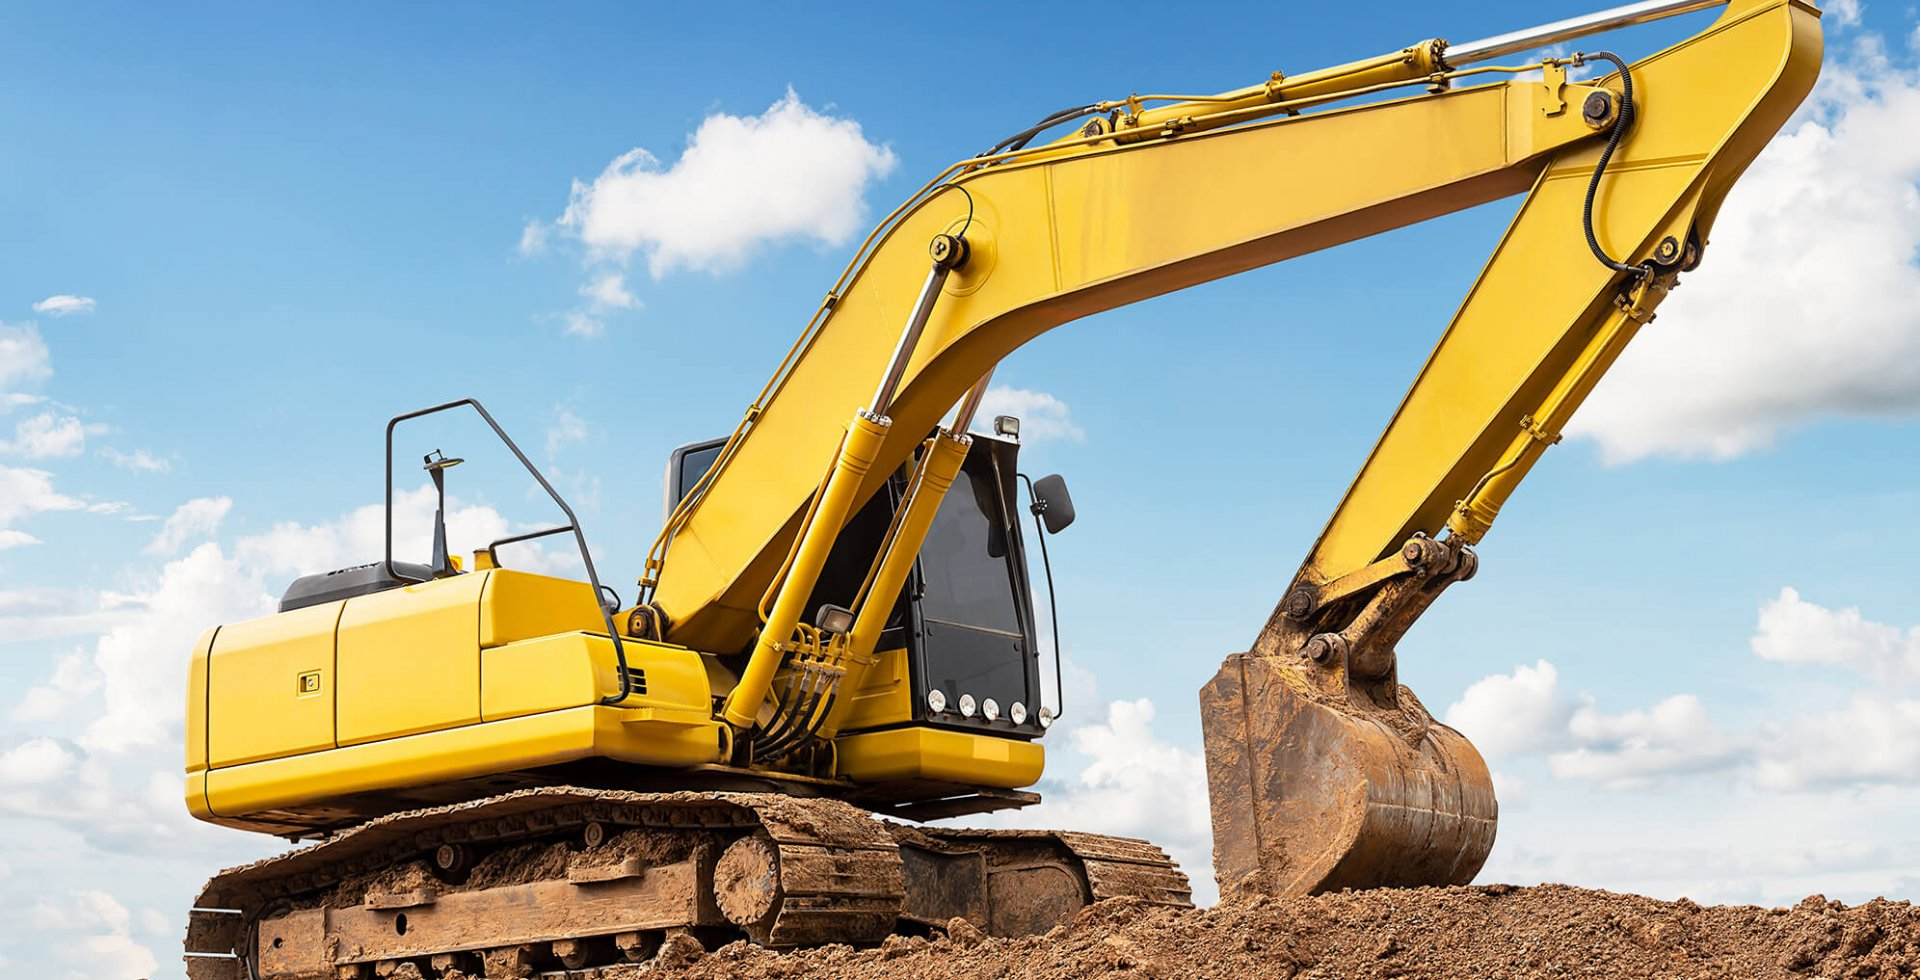 Excavator backhoe on the ground at construction site in blue sky background